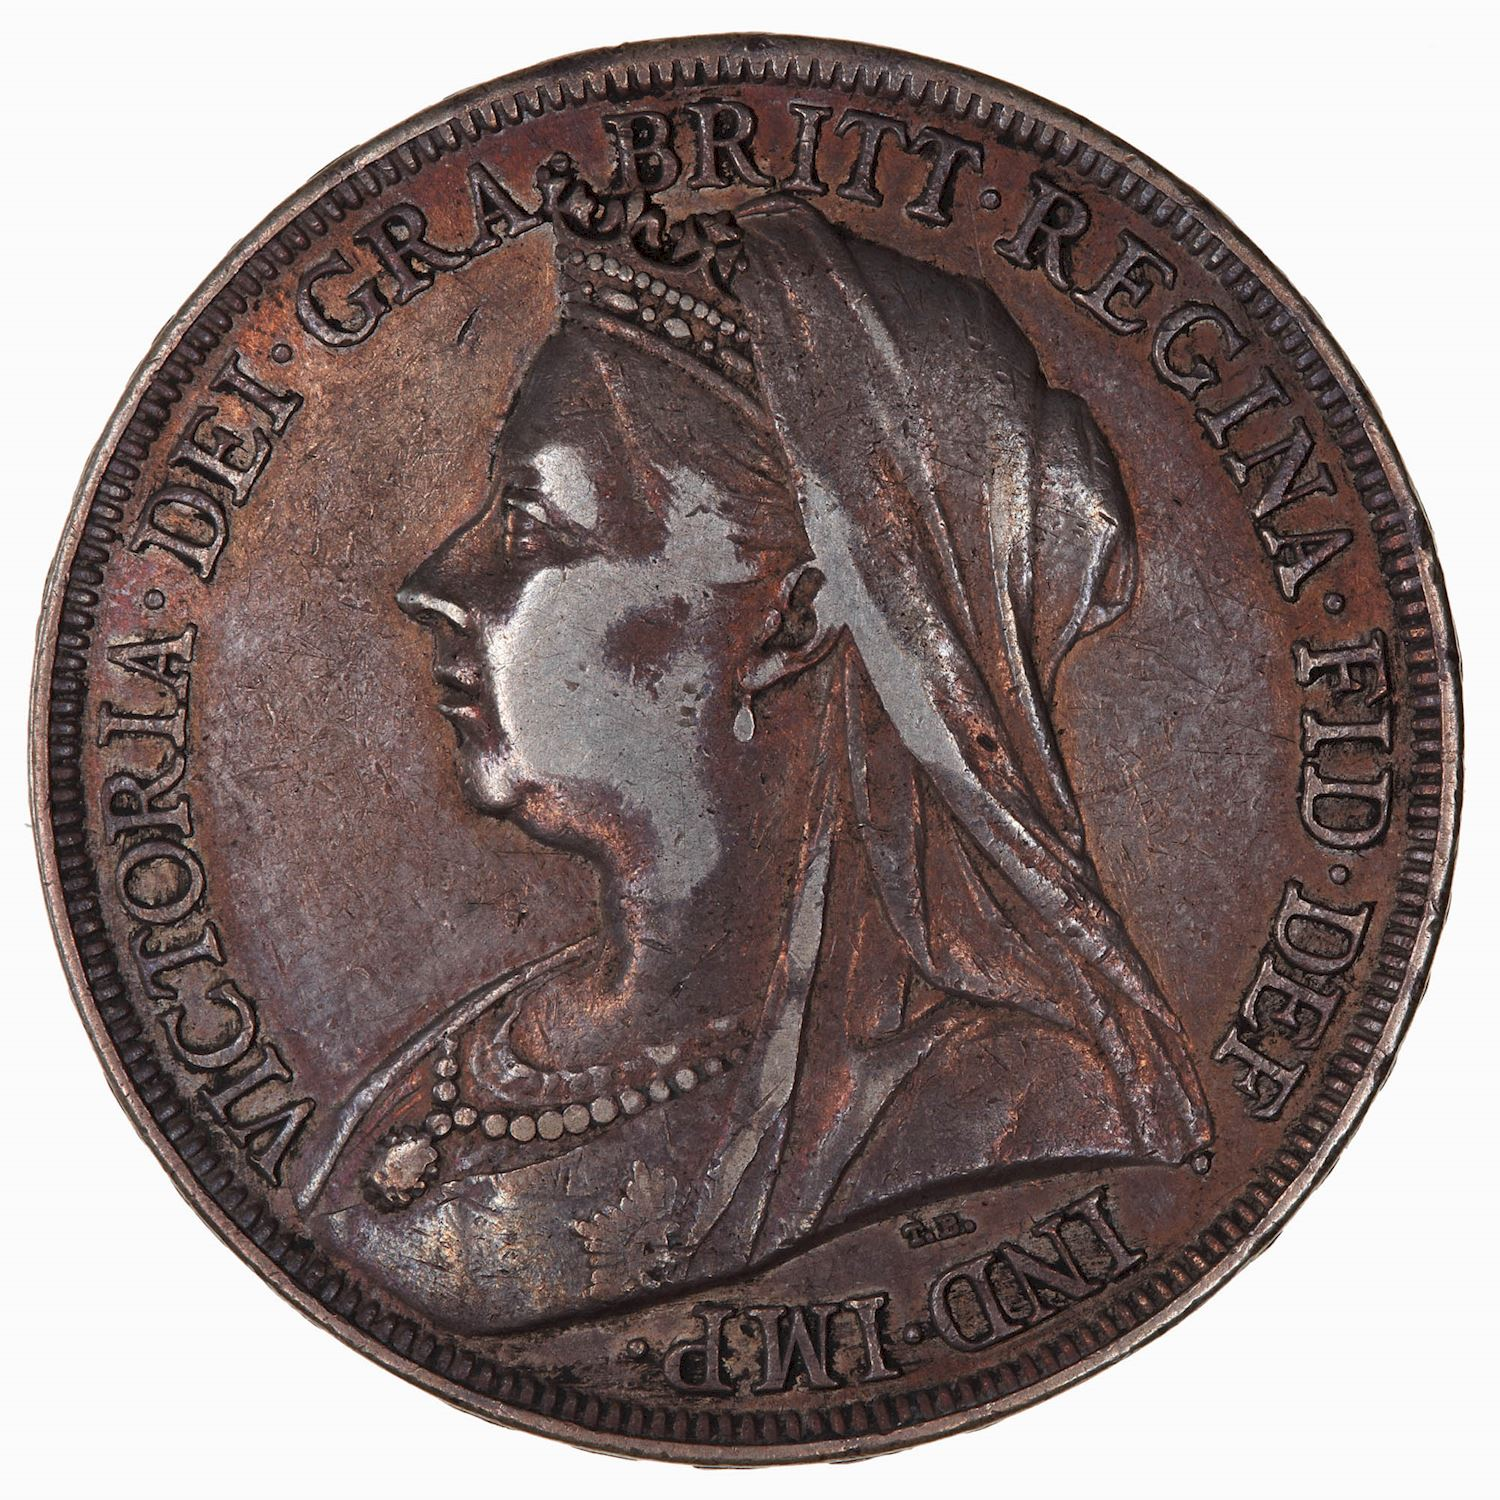 Crown 1894: Photo Coin - Crown, Queen Victoria, Great Britain, 1894